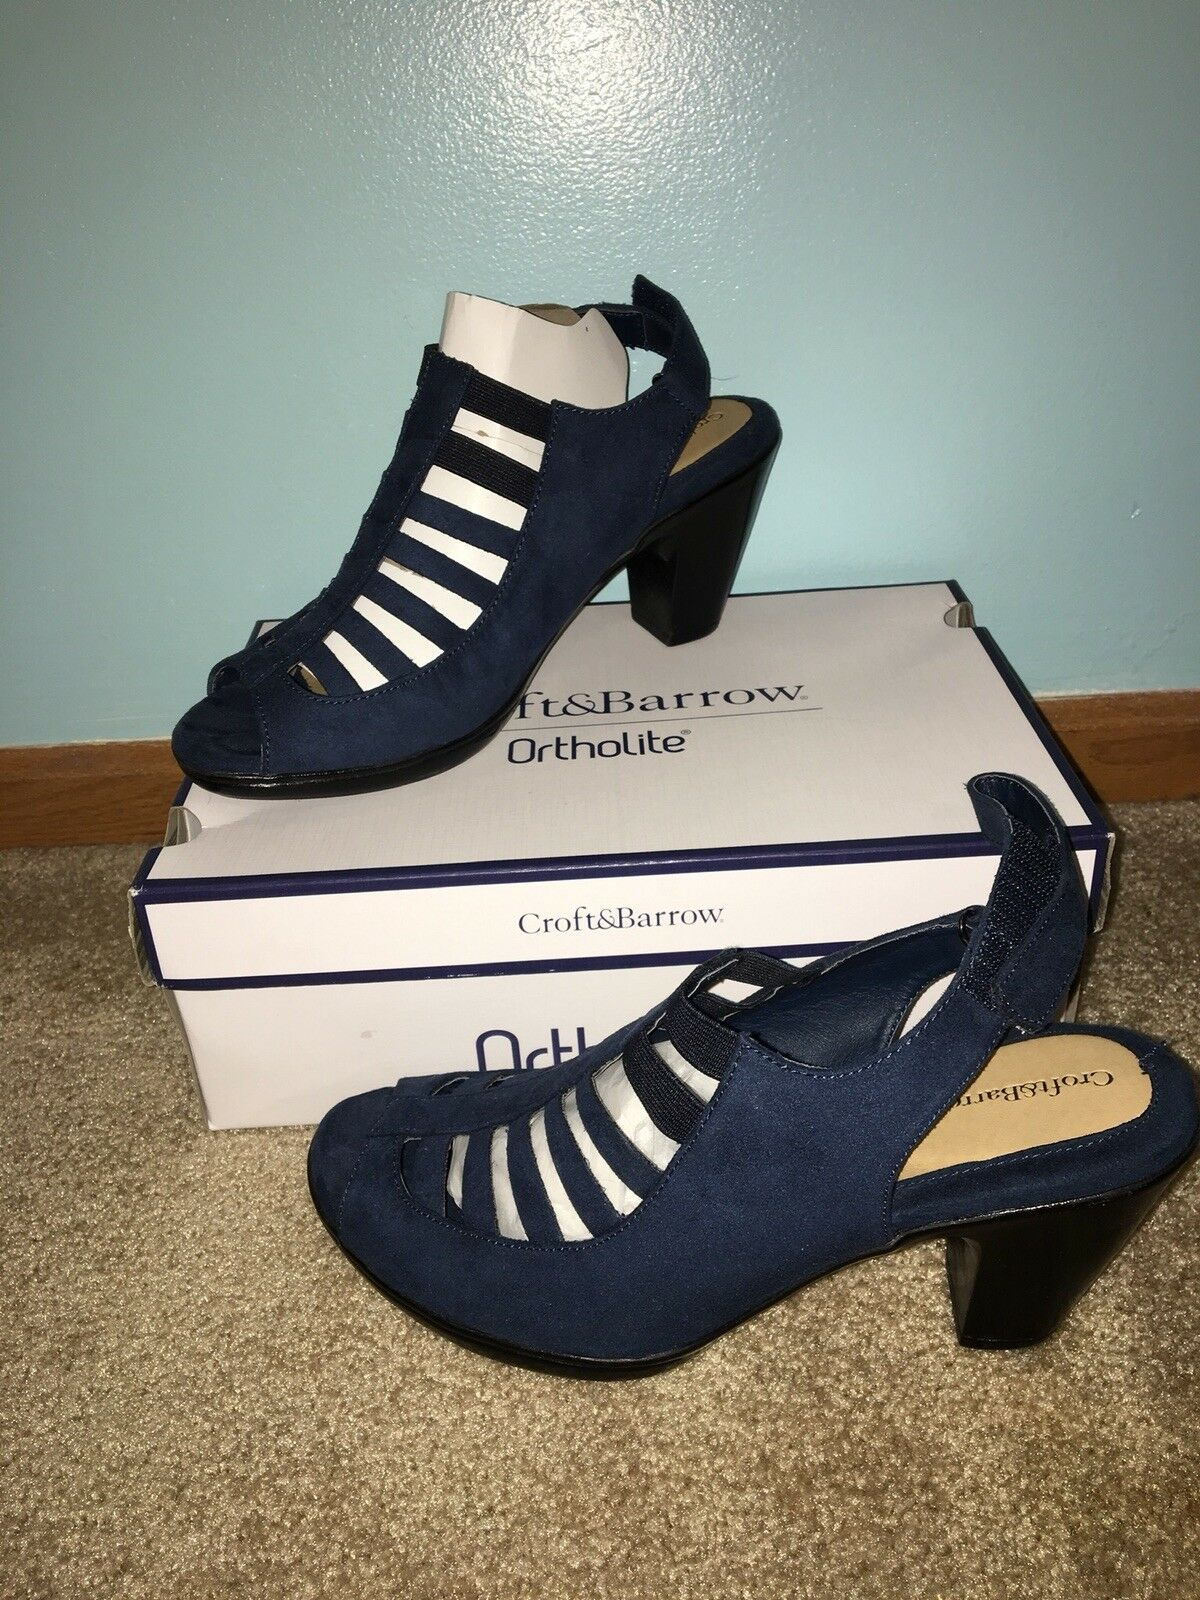 Spring Summer Women's Sandal Navy bluee Size 10 Cute Croft And Barrow Ortholite